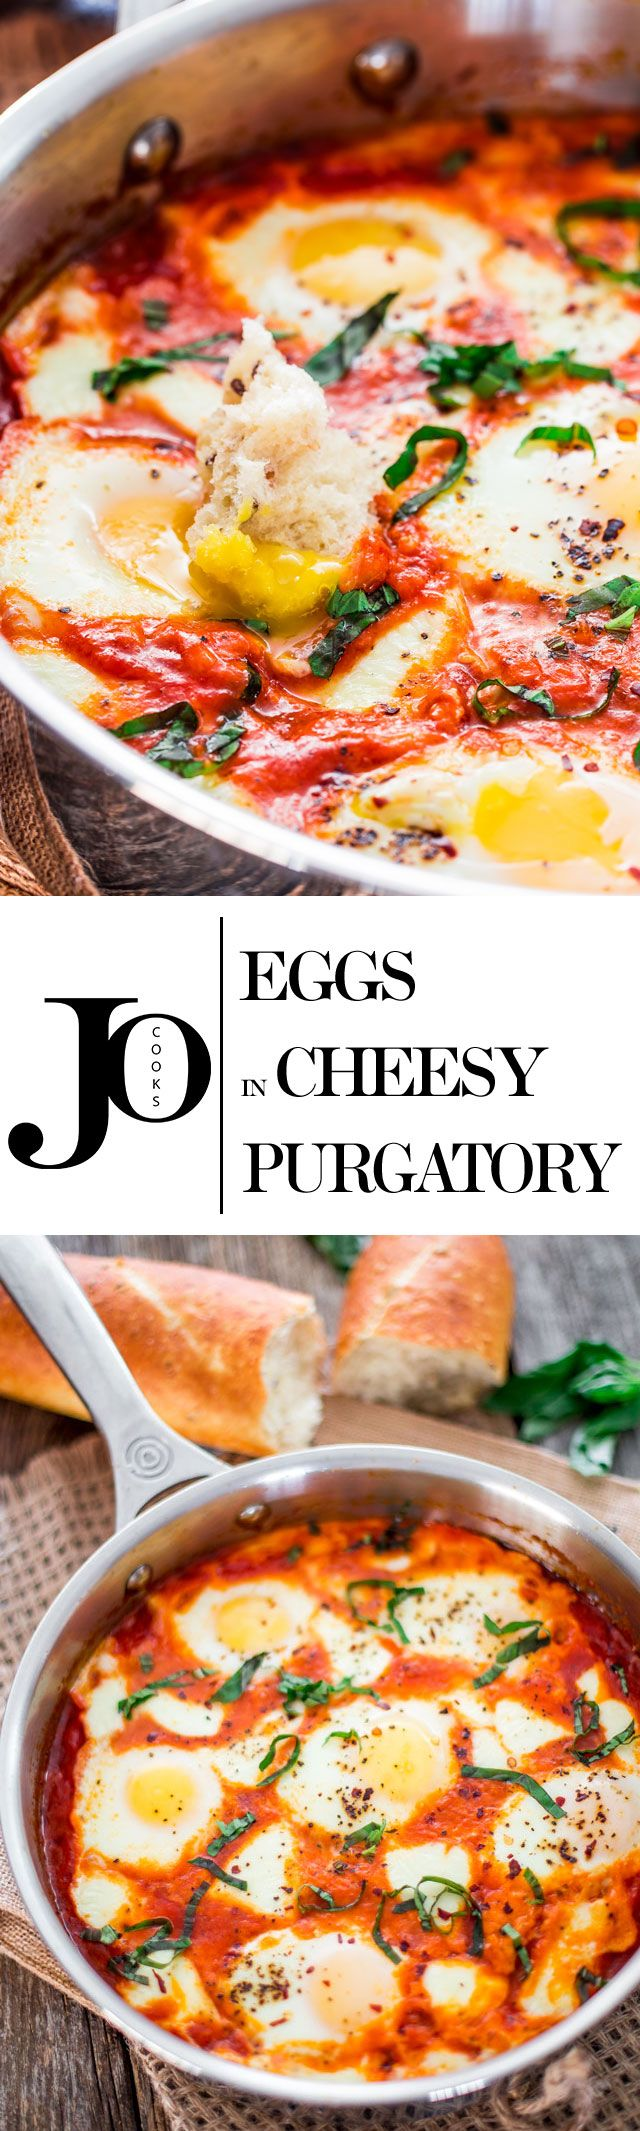 Eggs in Cheesy Purgatory - a spicy and savory breakfast also known as Shakshuka. Baked eggs in a delicious spicy tomato sauce and loaded with cheese, perfect start to any day!